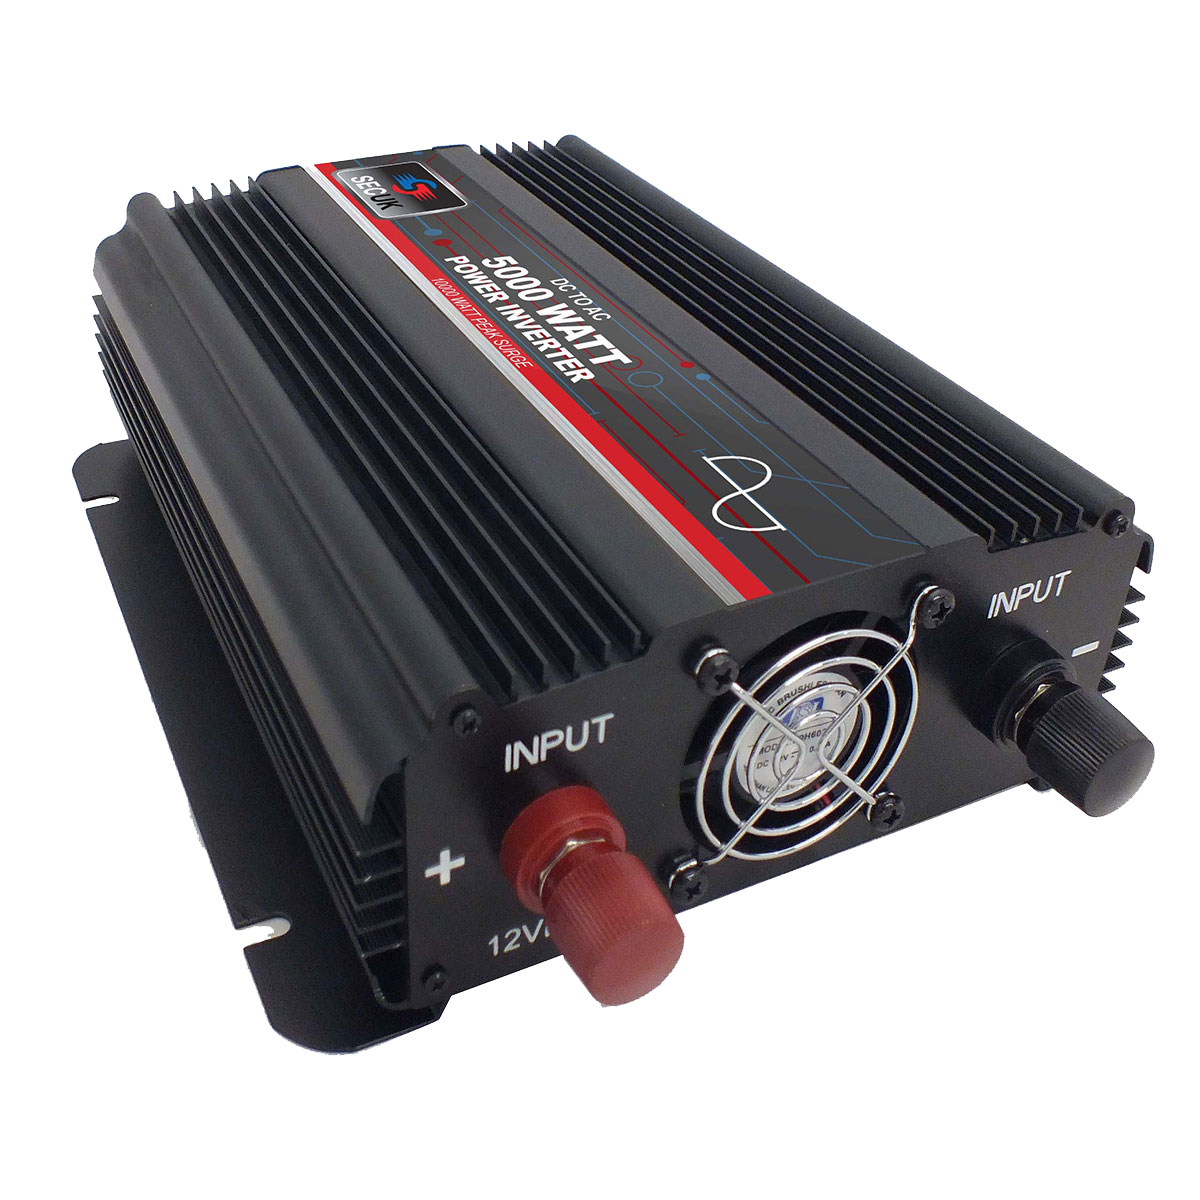 Sec Uk Batteries And Be Spoke Battery Solutions 6 To 12 Volt Power Supply Inverter Industry